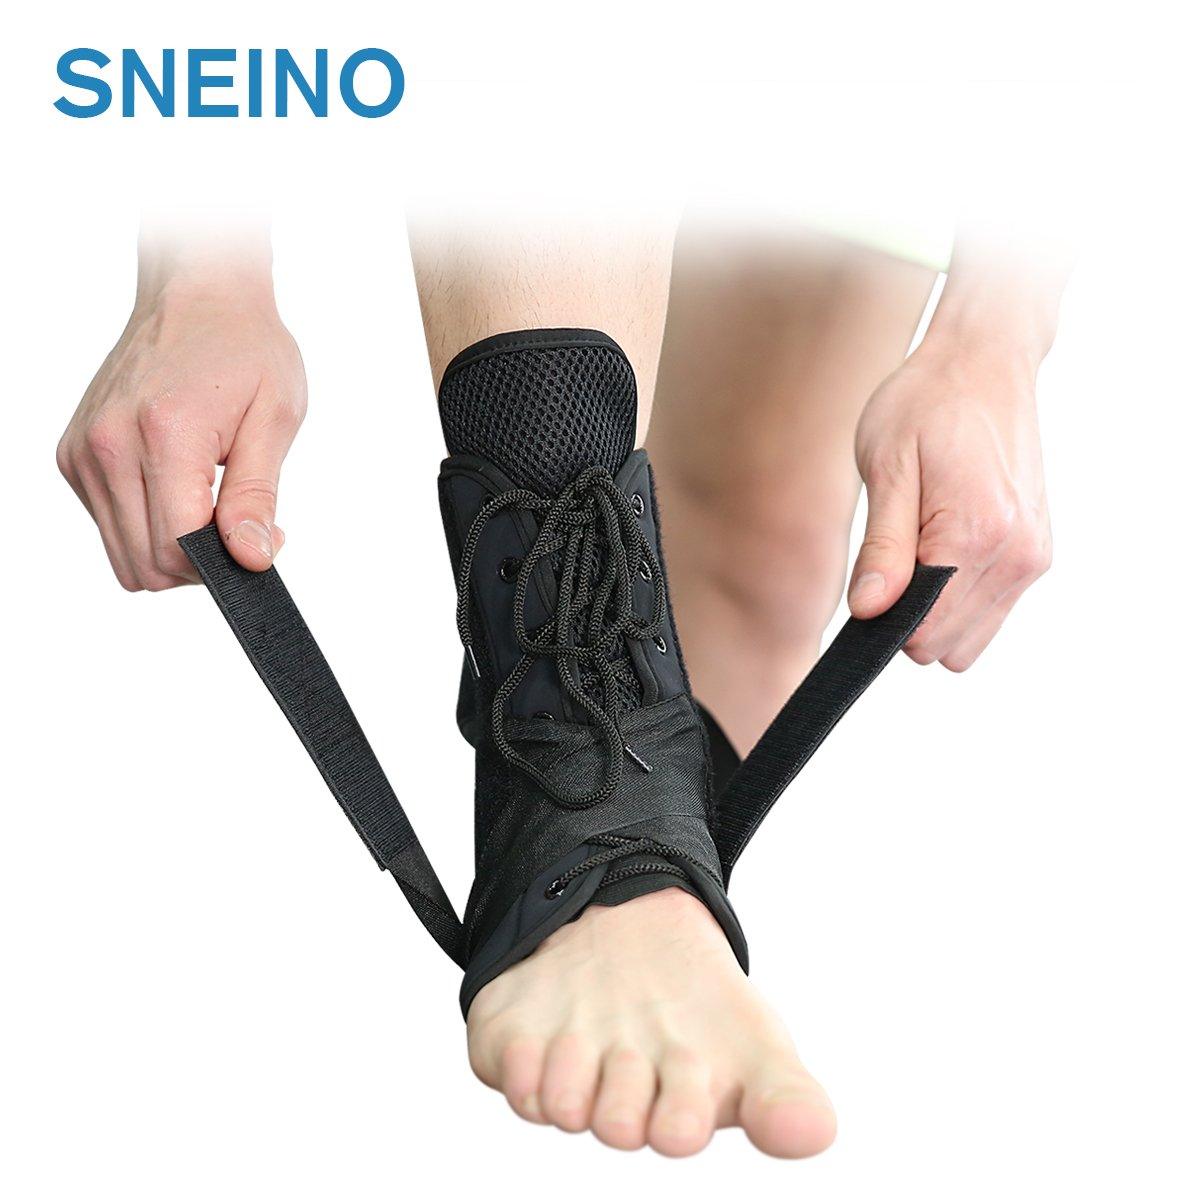 Ankle Stabilizer SNEINO Adjustable Ankle Brace with Gel Spring Support Ankle for Pain Recovery Reduce Foot Swelling Provides Arch Support,Heel Spurs,Achilles Tendon (XL)